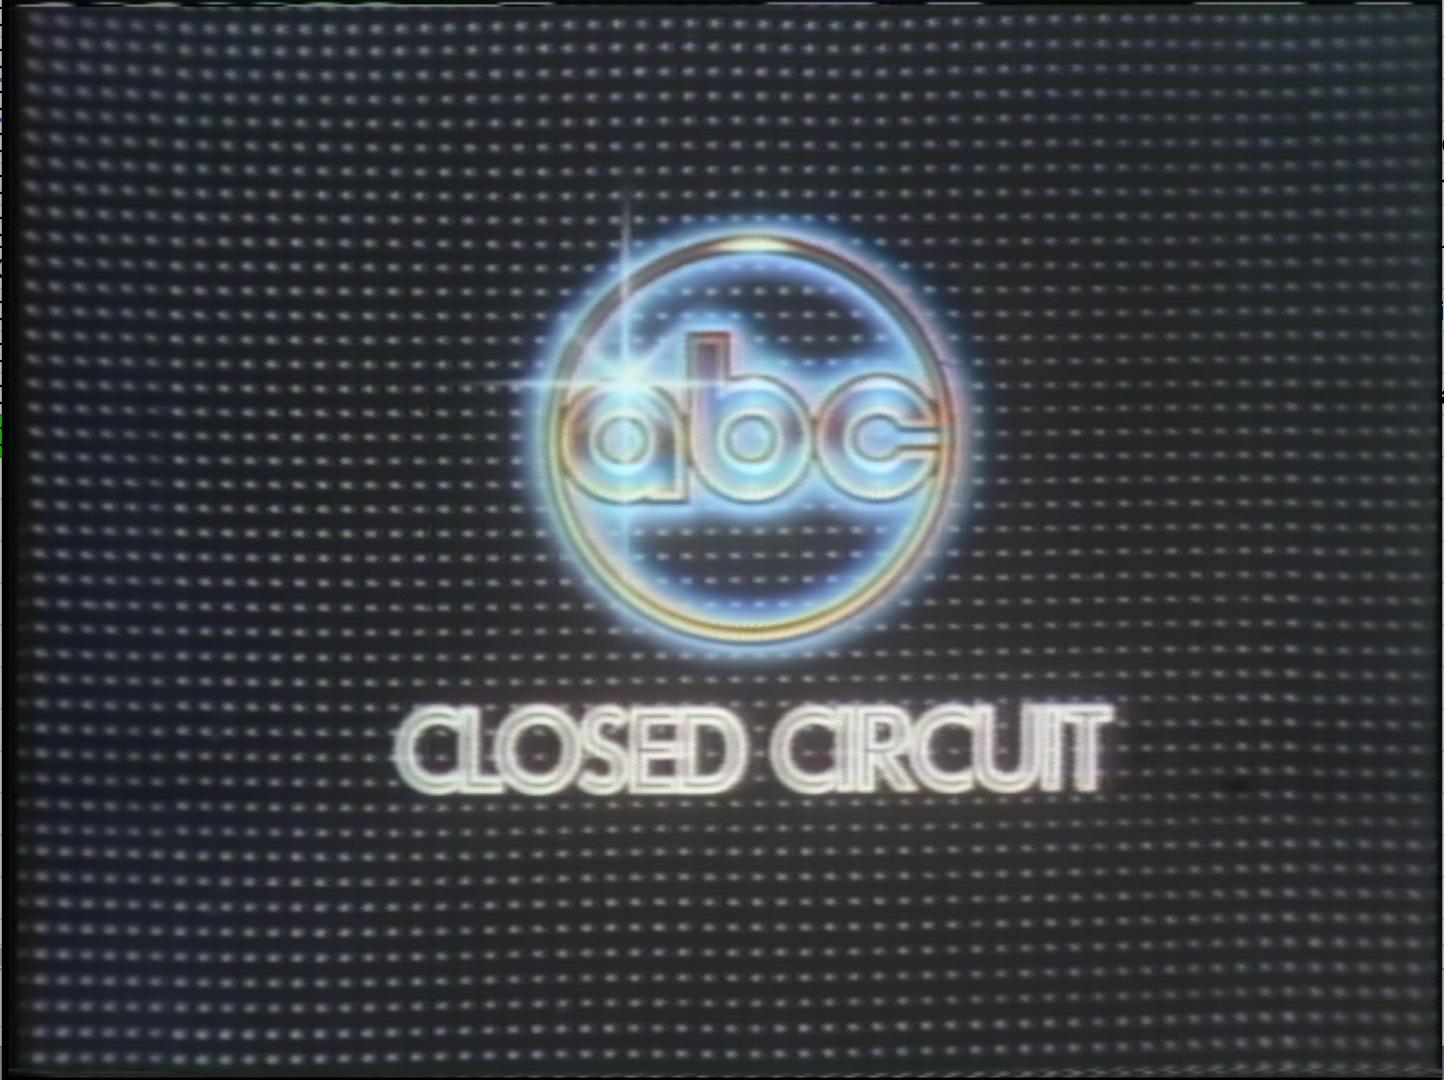 An example of a monitor image provided to WSJV by ABC. This image would have appeared on production studio monitors when they weren't playing other broadcast components (live reporting, sound bytes to be cued up, etc.). Image shows ABC logo on black screen.